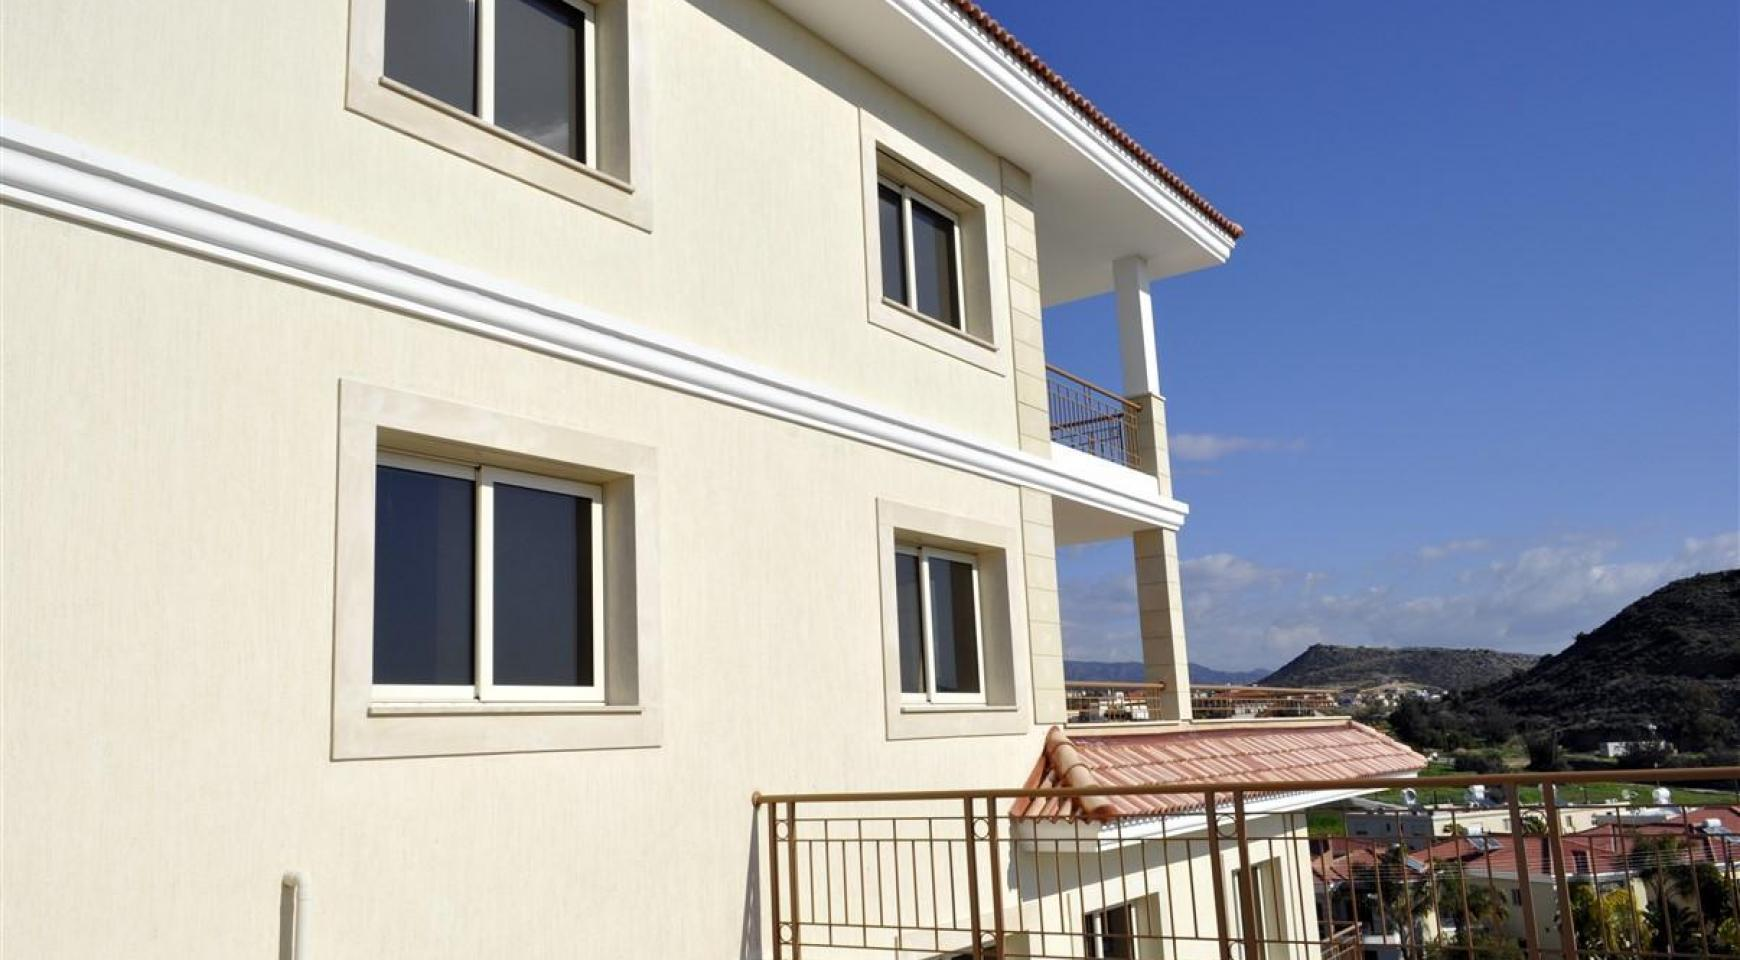 2 Bedroom Apartment with Amazing Views in Agios Athanasios - 7